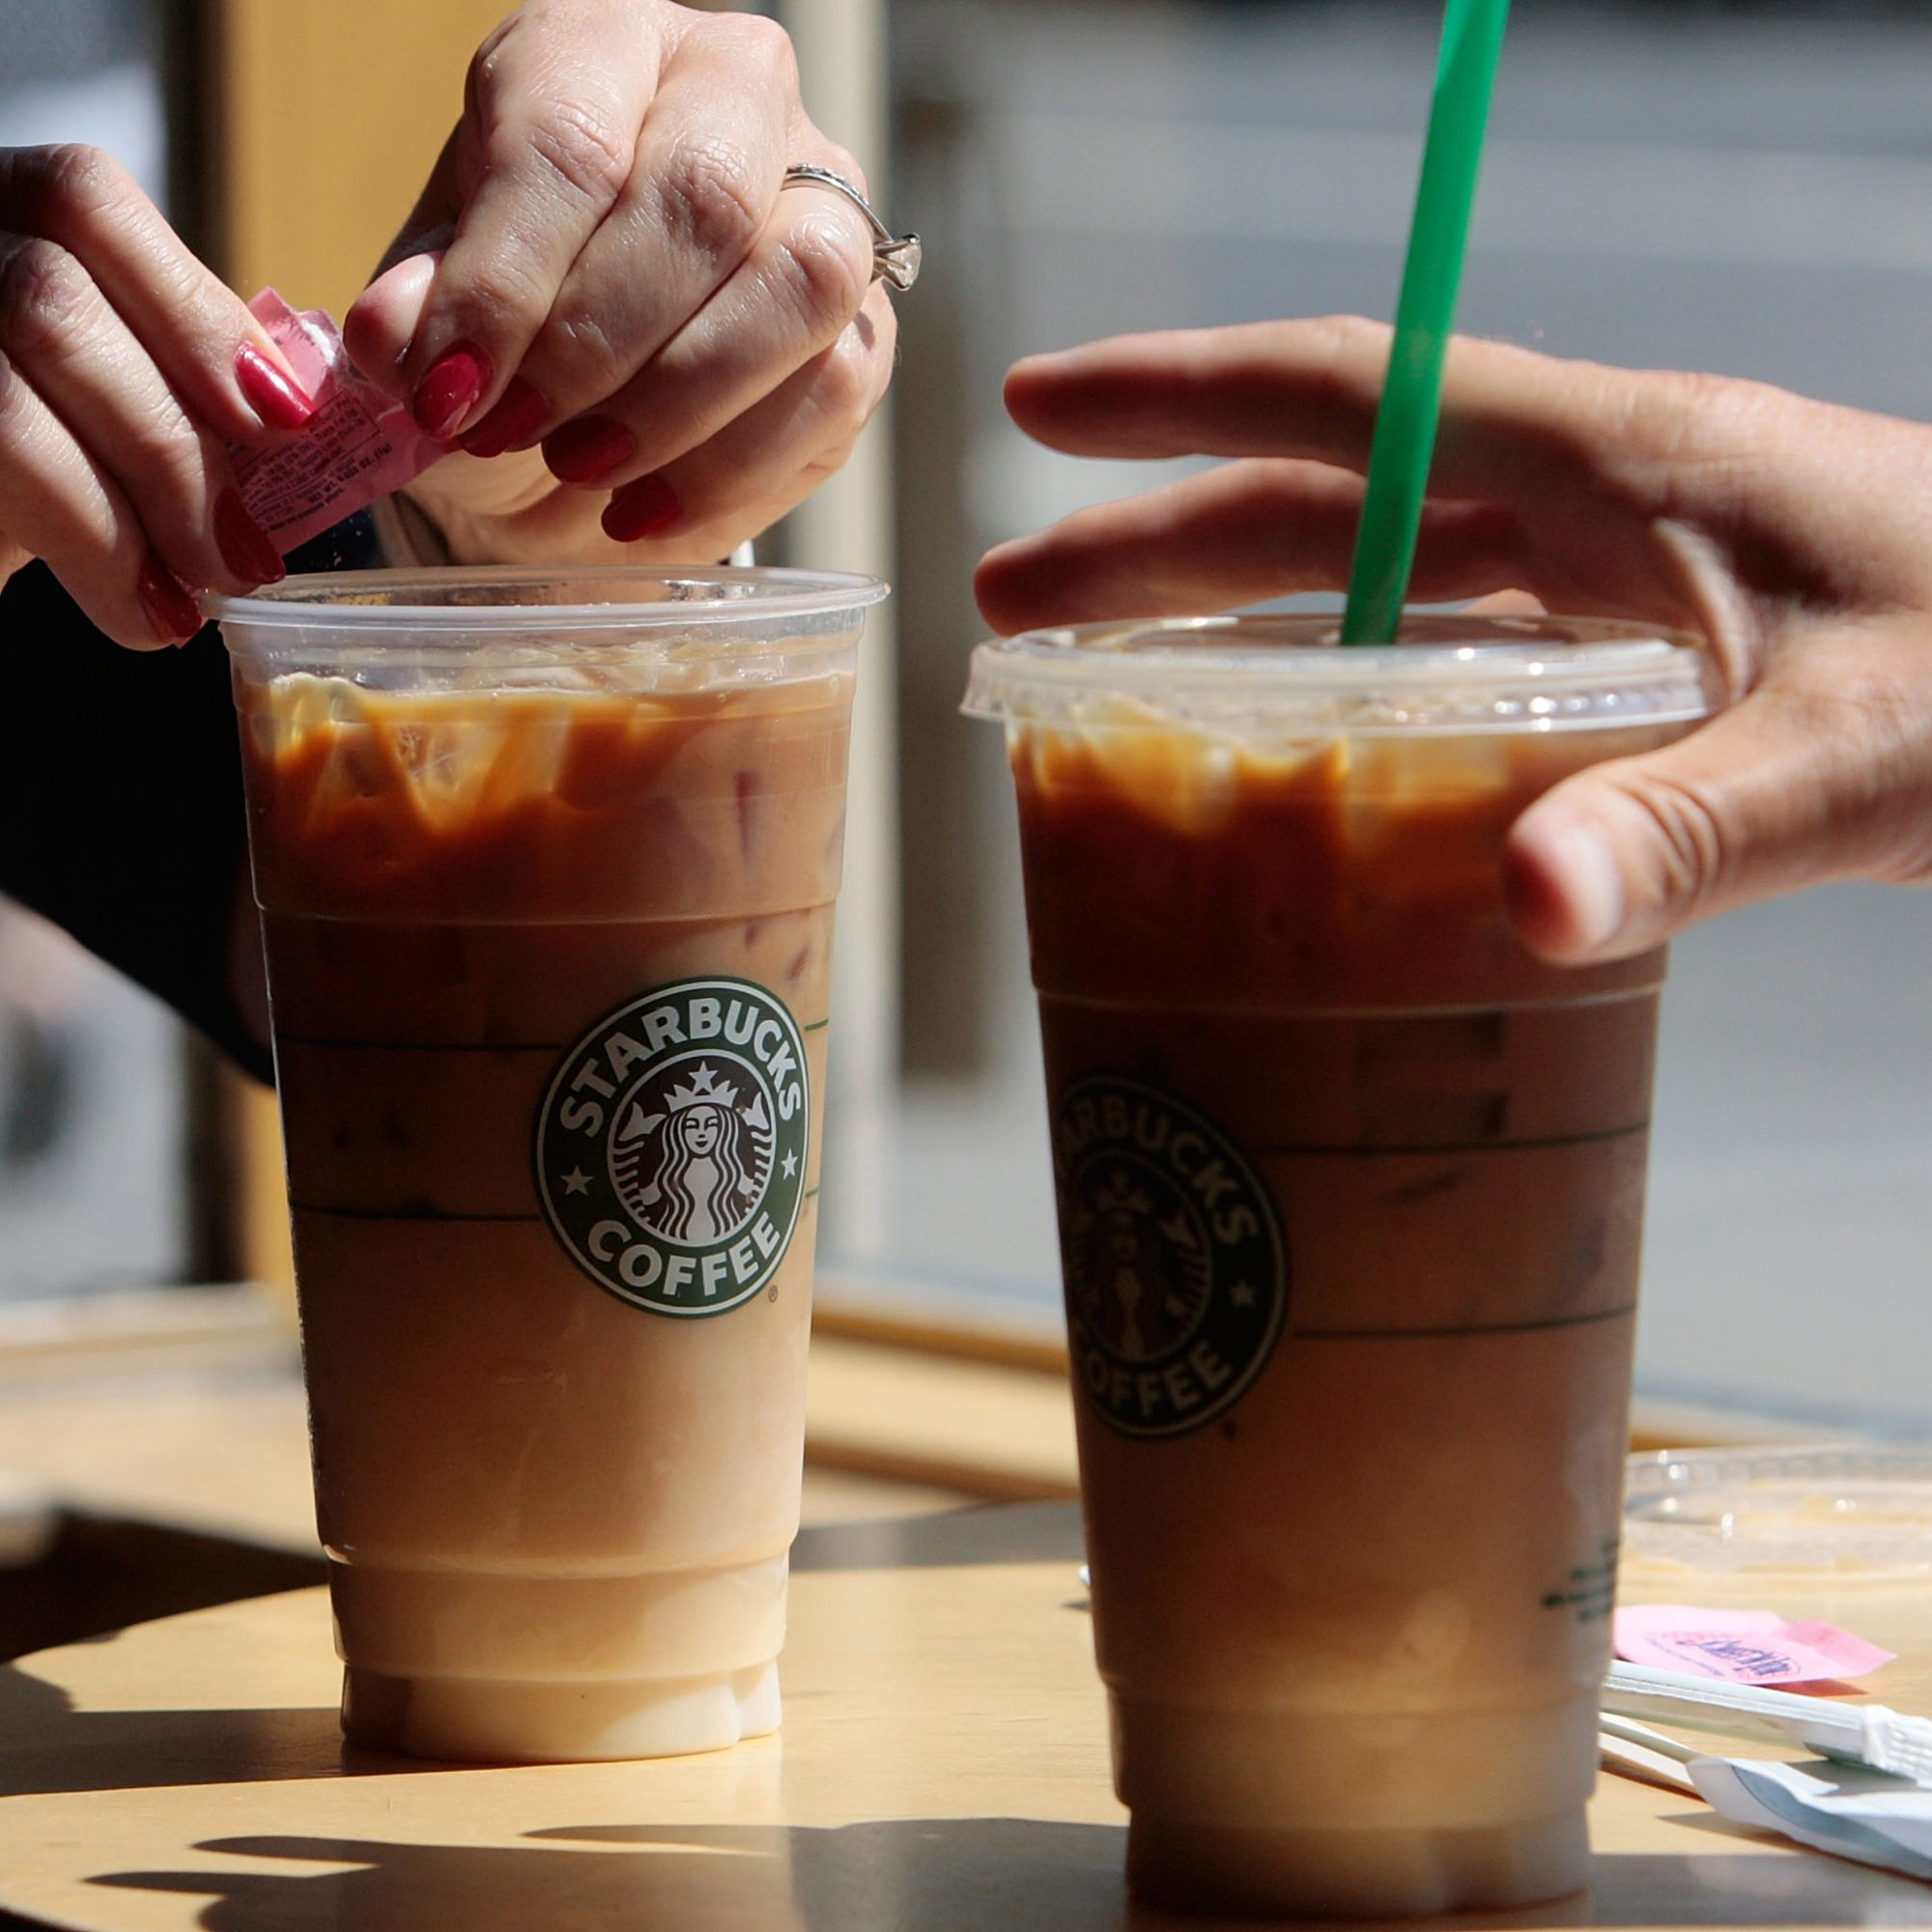 Starbucks-Iced-Coffee-Lawsuit- FWx